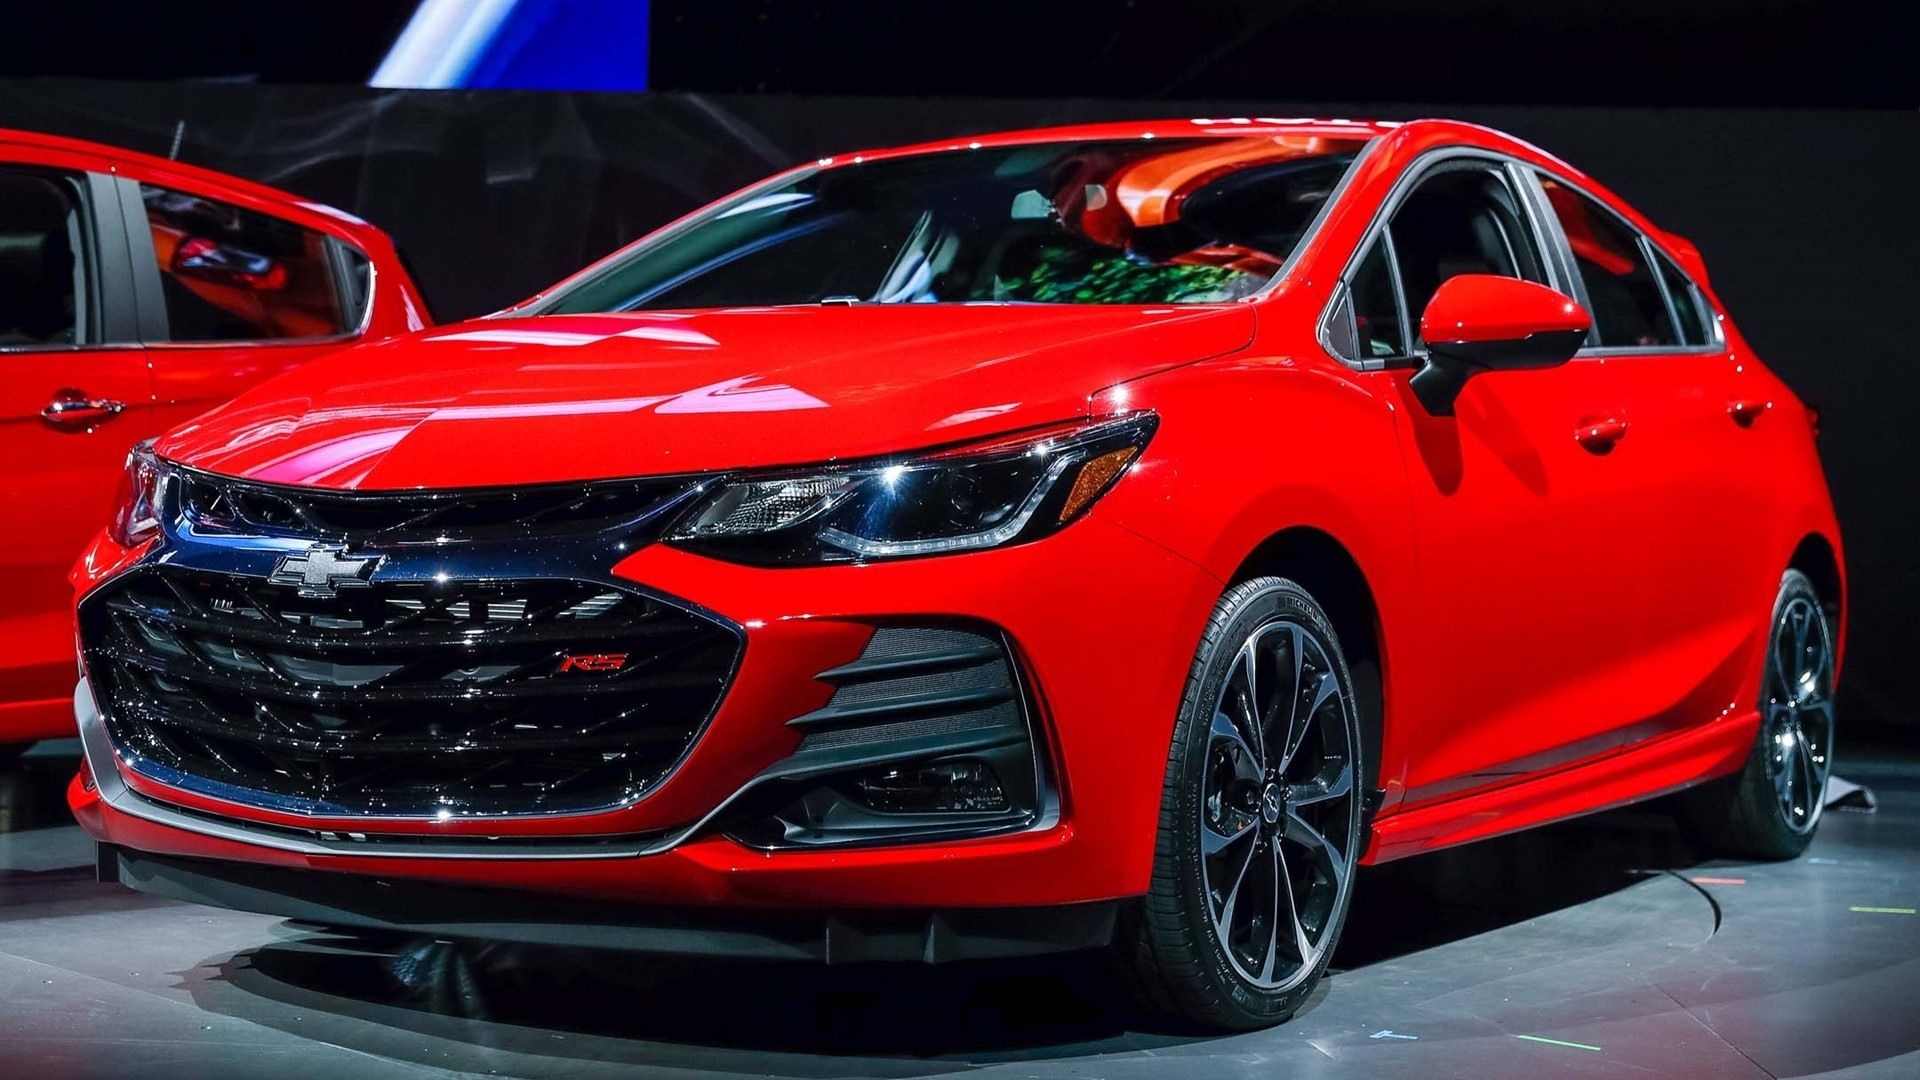 2019 Chevrolet Cruze Msrp Review And Specs Chevrolet Spark